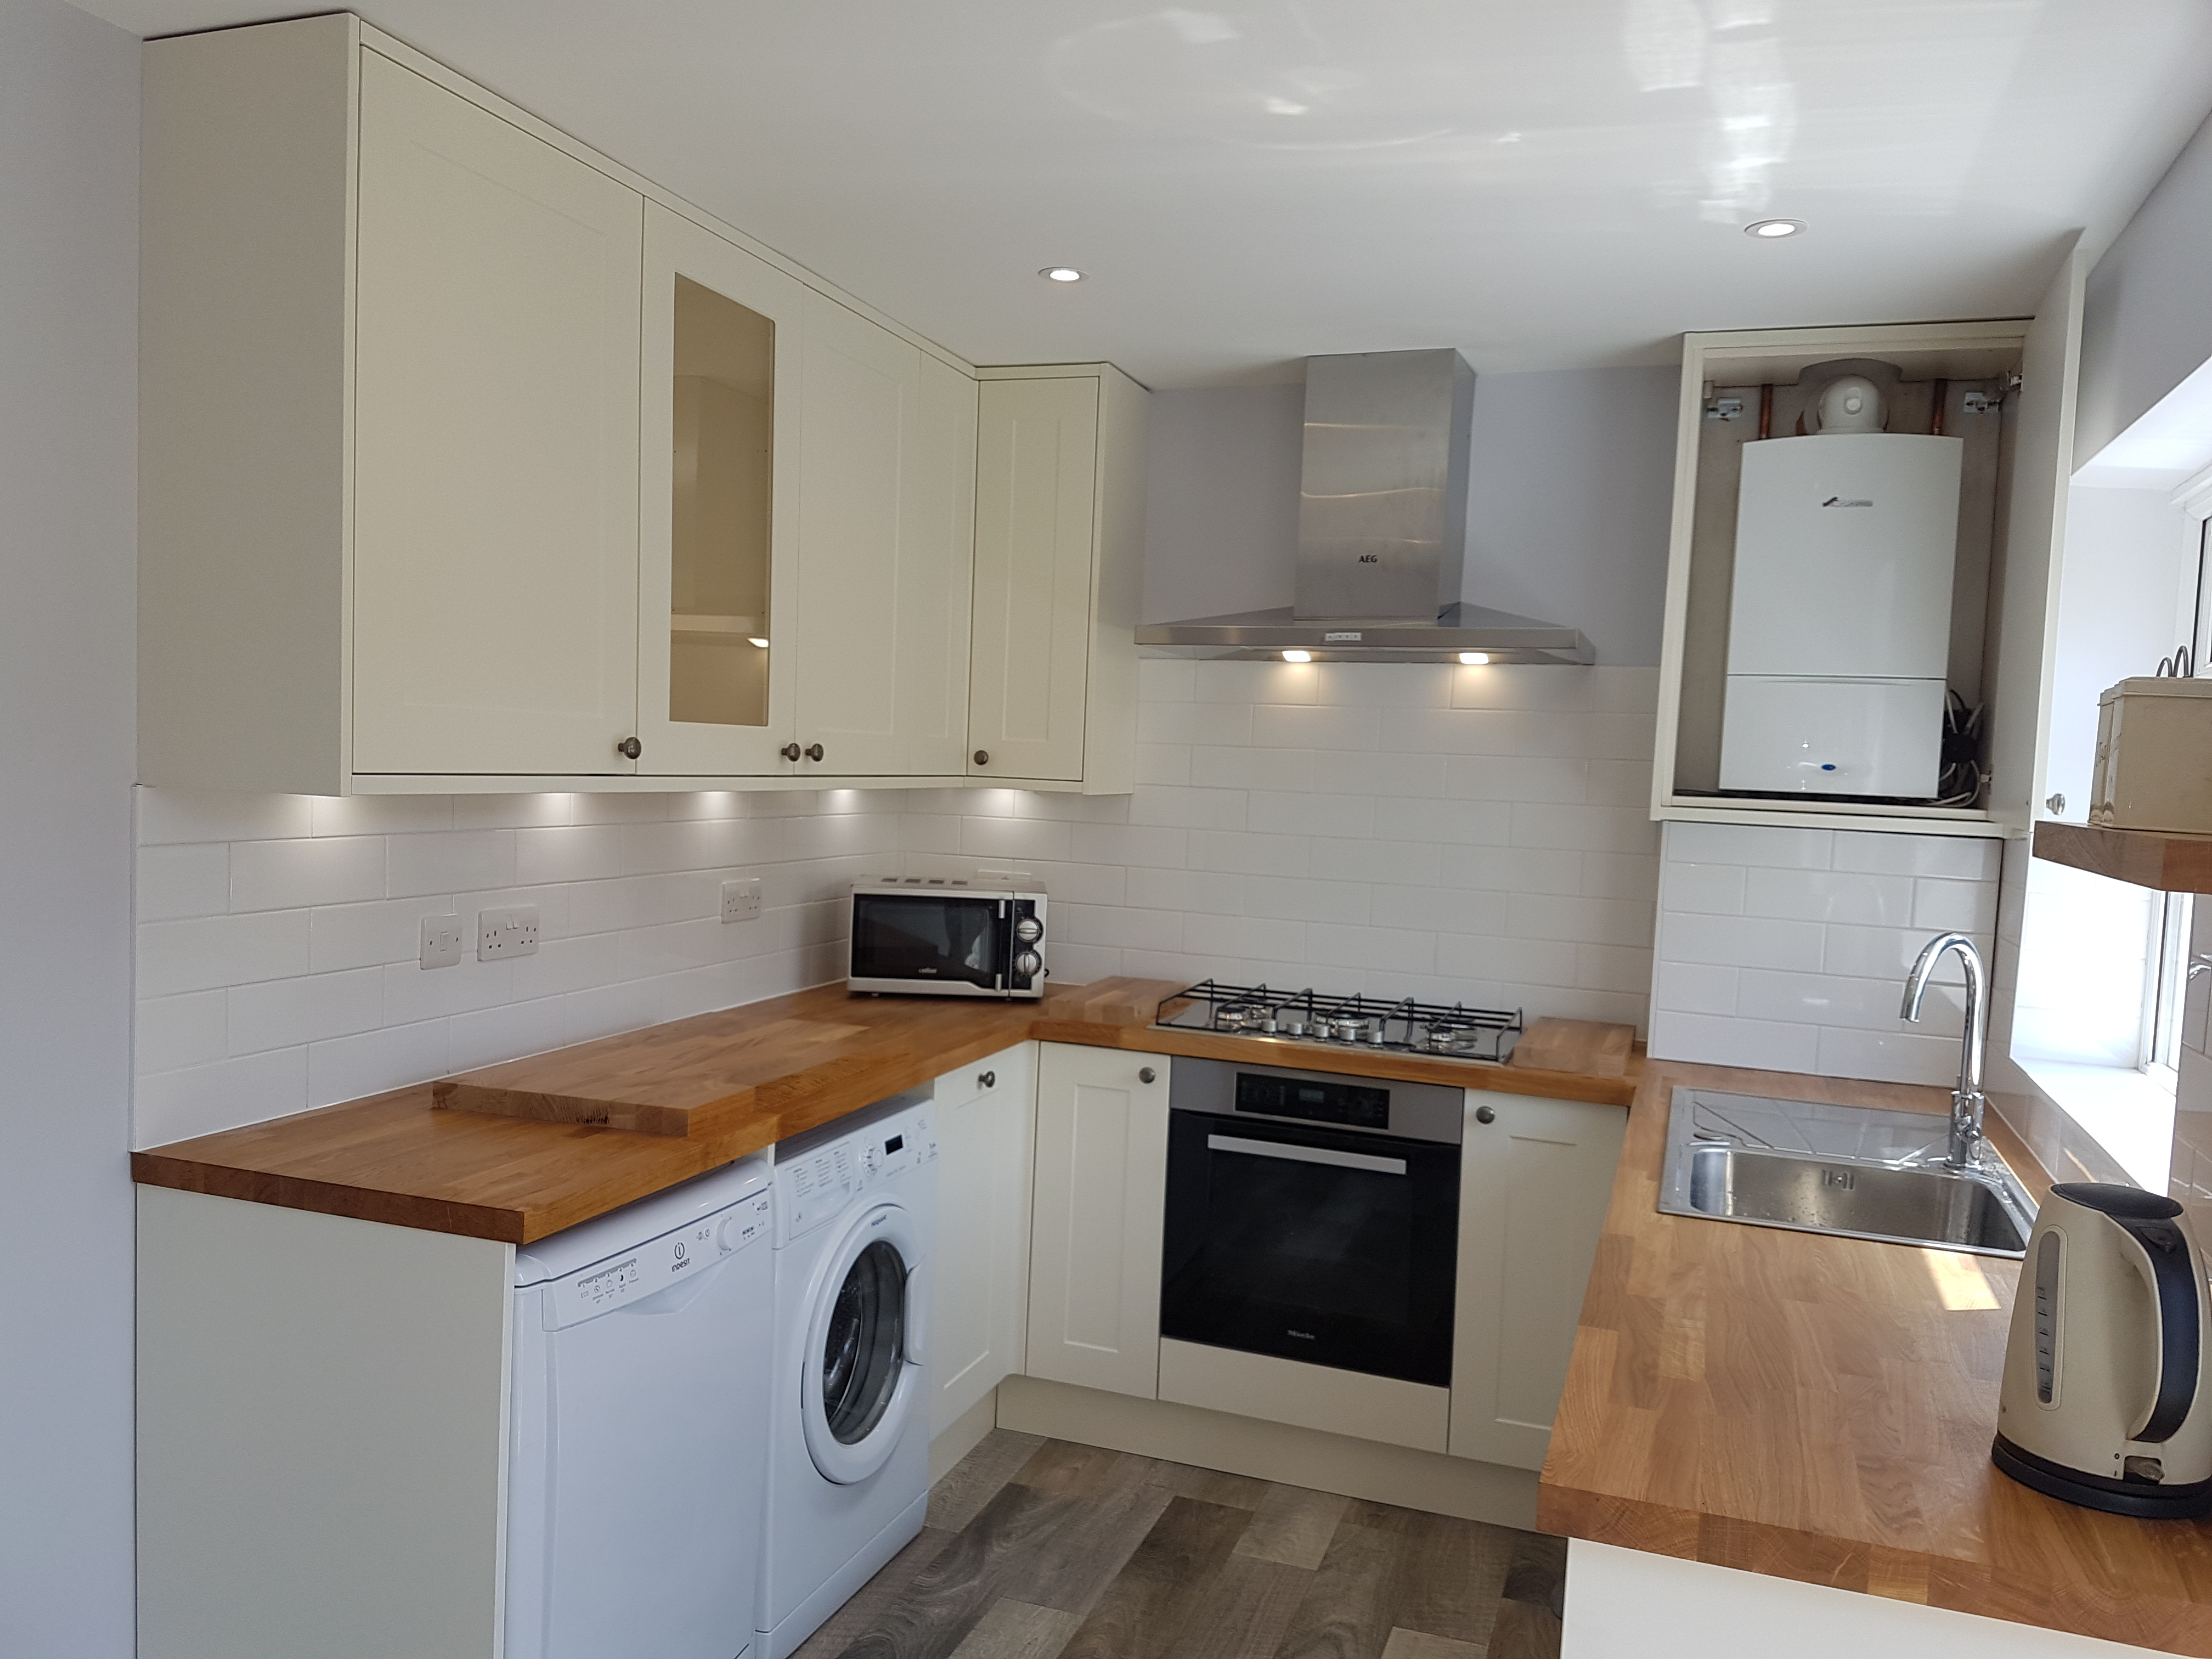 New Benchmarx Kitchen Fitted In Lower Morden Ash Build